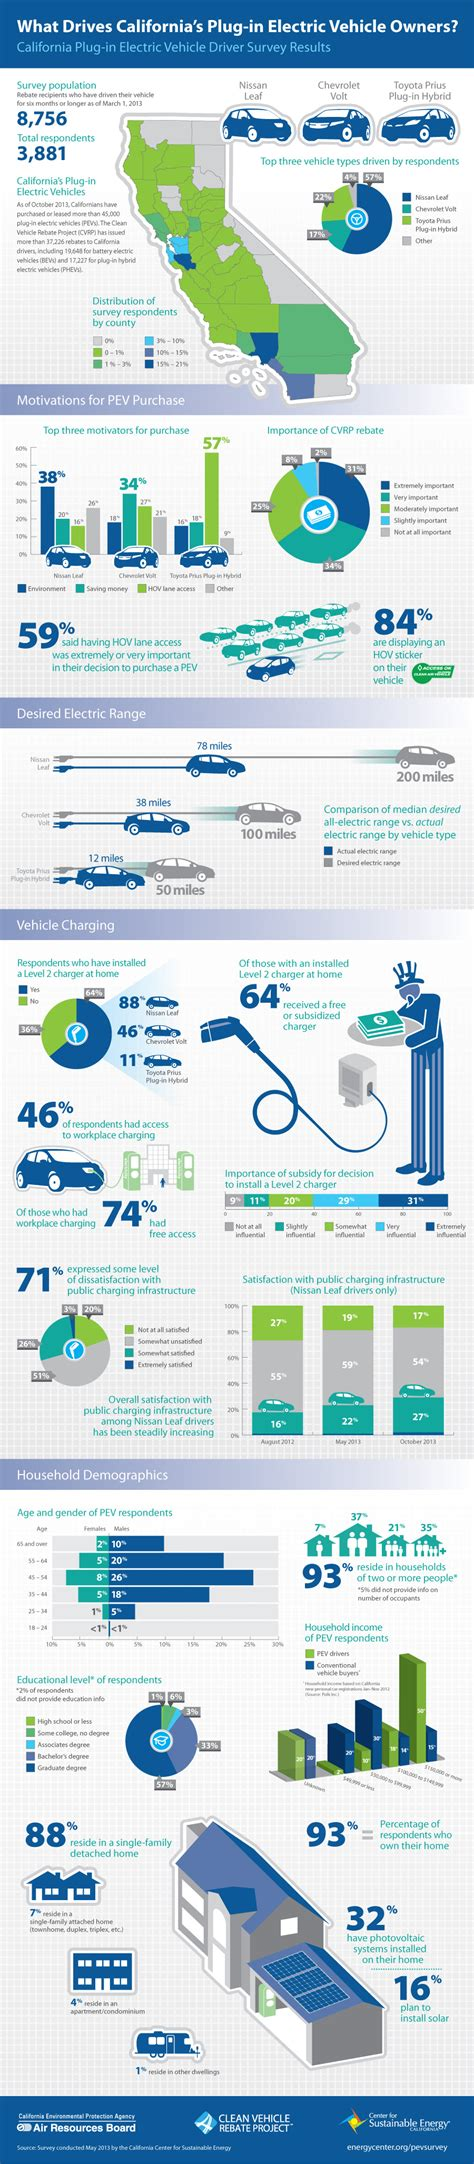 Electric Vehicle Questionnaire Infographic Quot What Drives California S In Electric